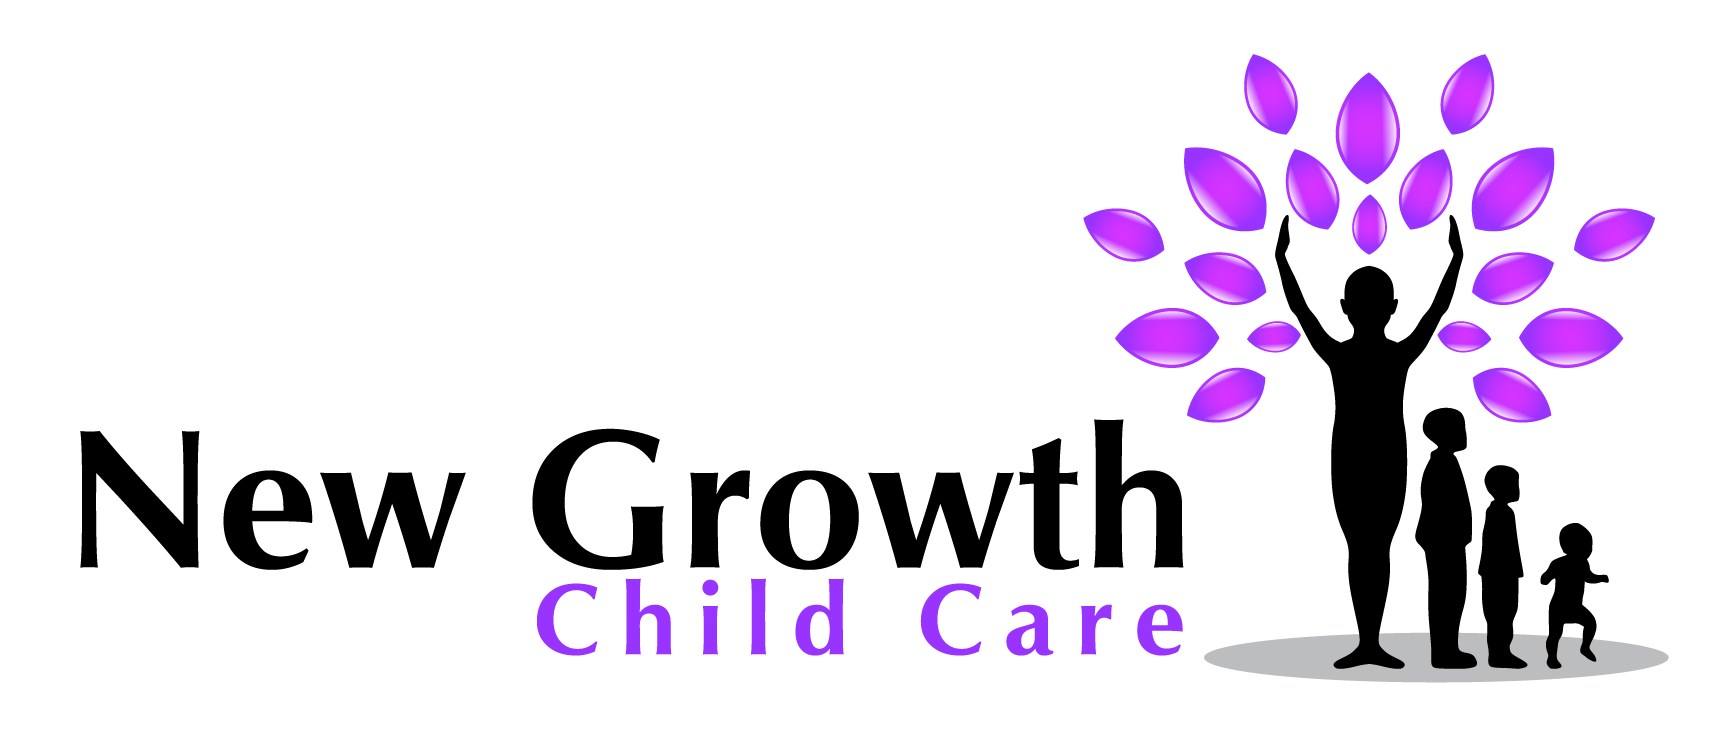 New Growth Child Care